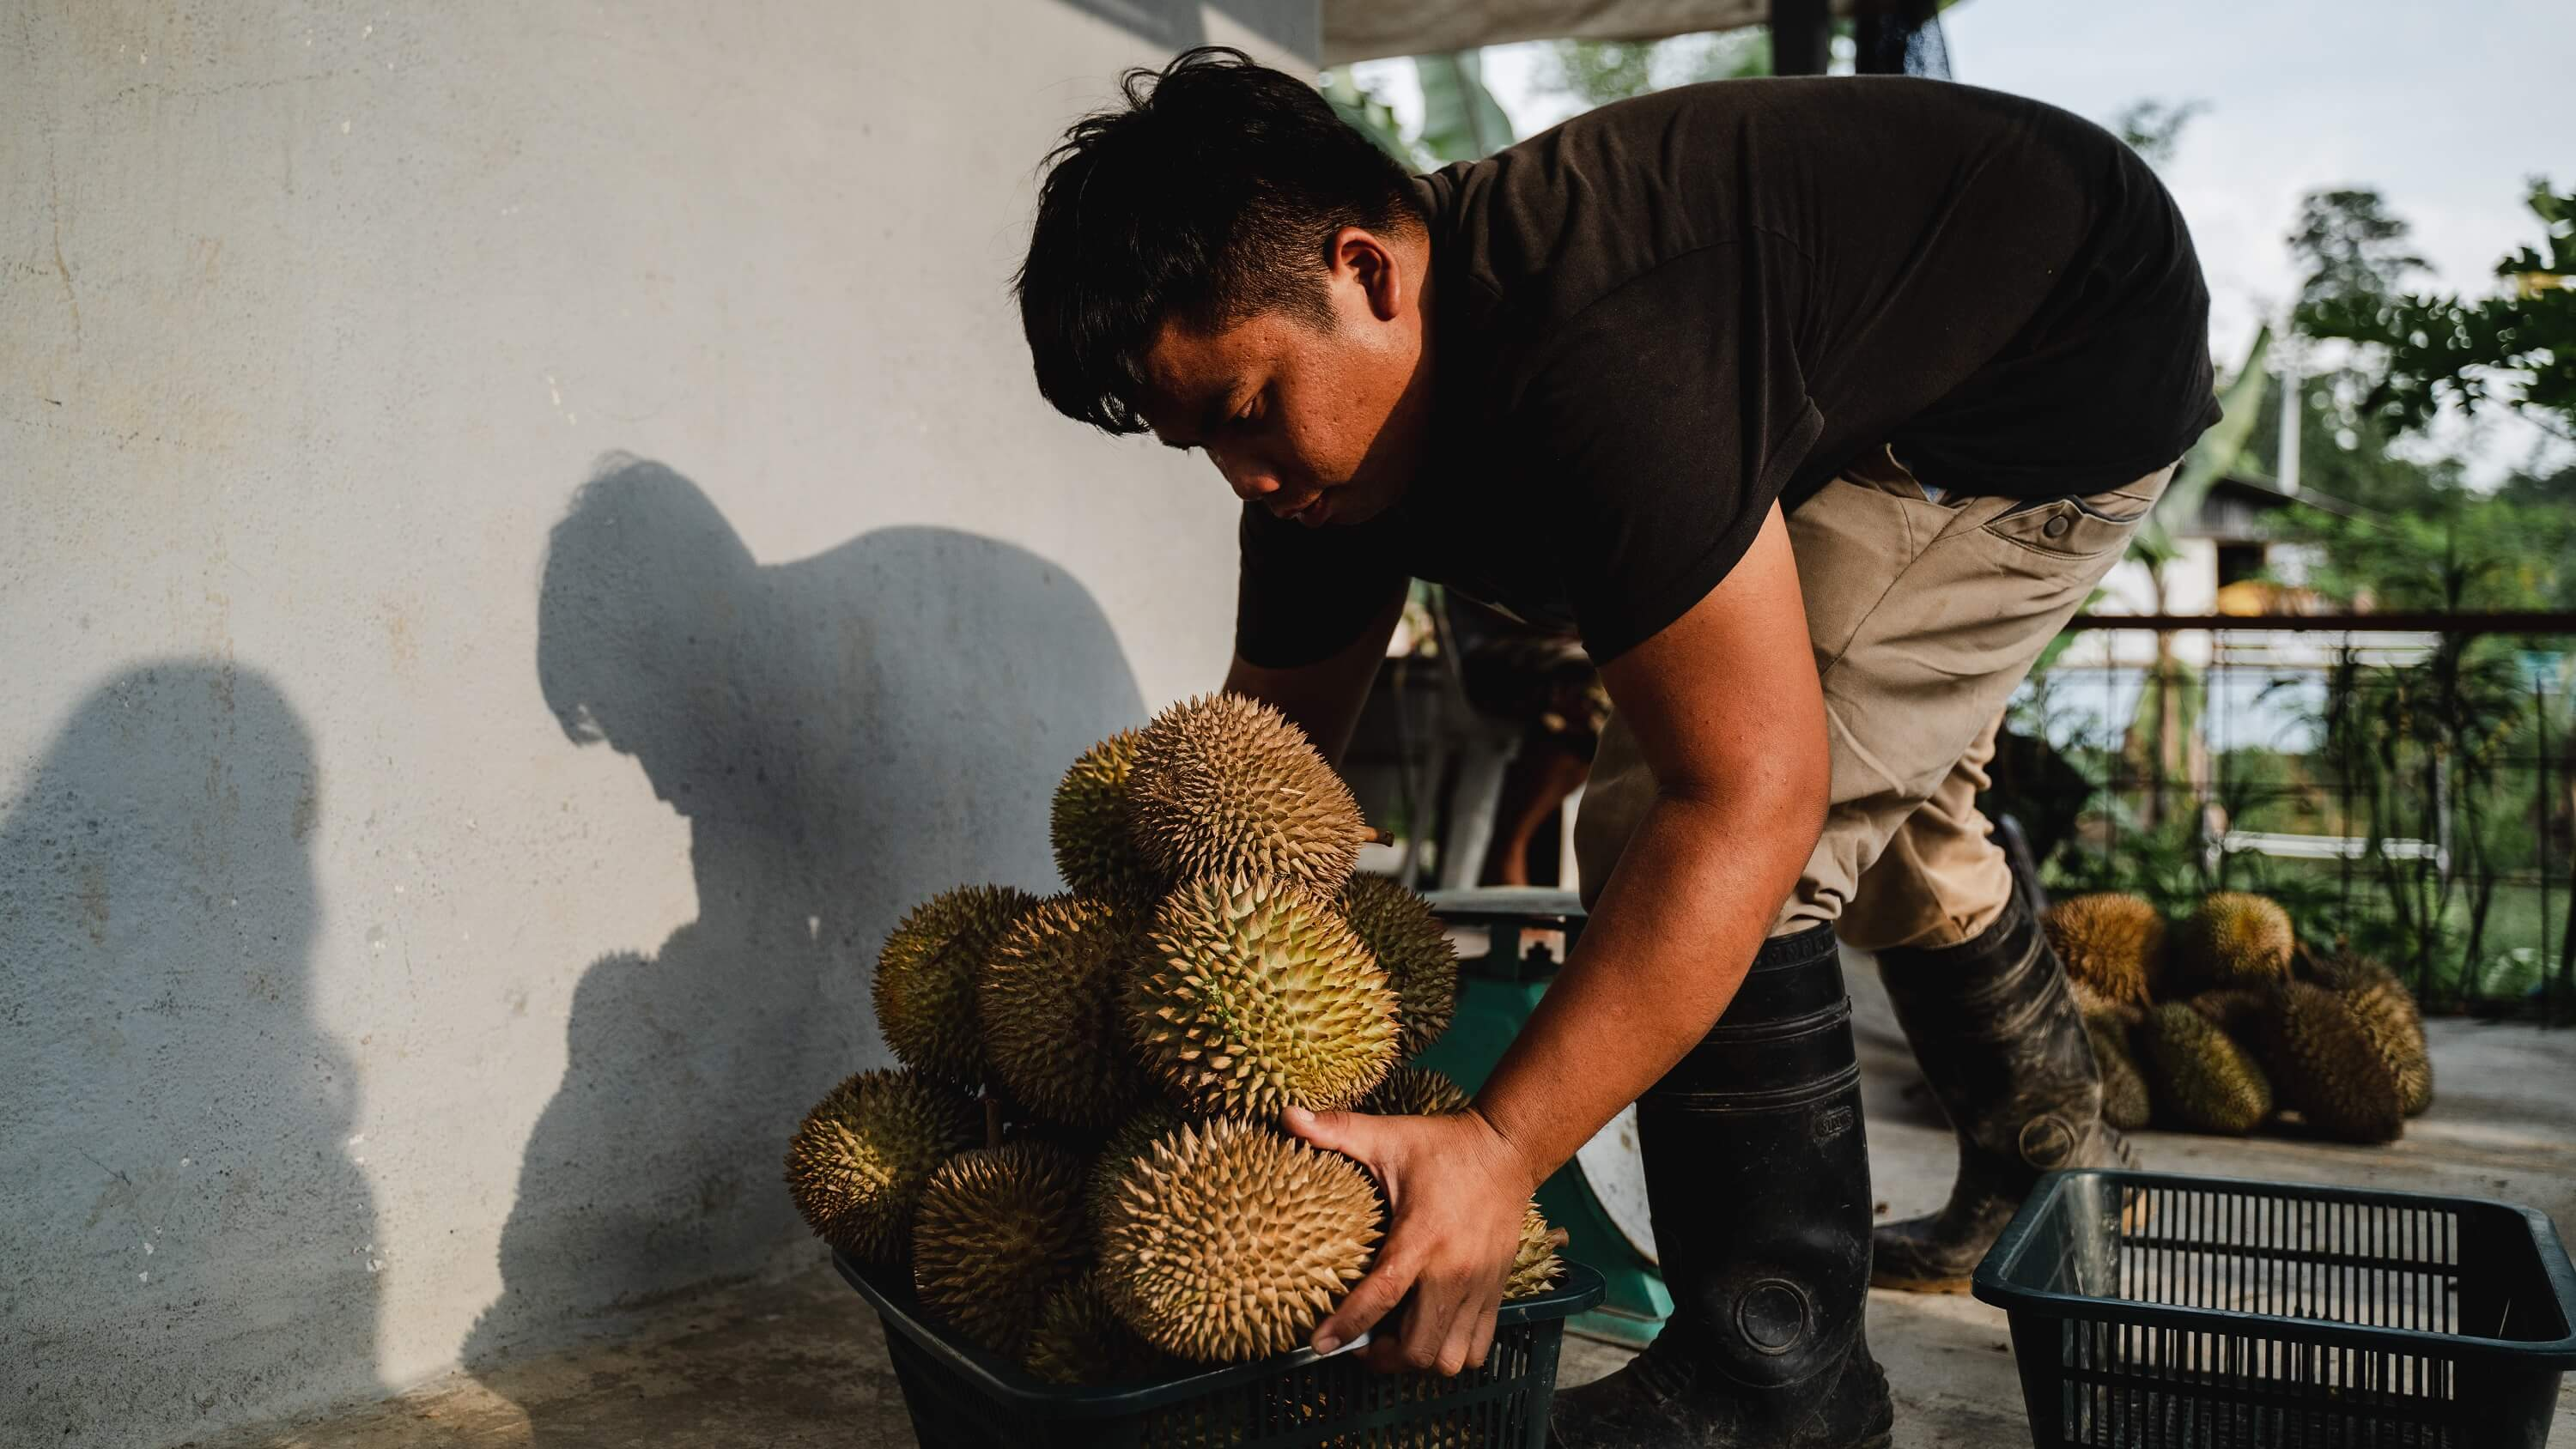 Yee Kuat [pictured] has been buying and trading Temuan-grown durians since he was 15 years old. Photo courtesy of Native